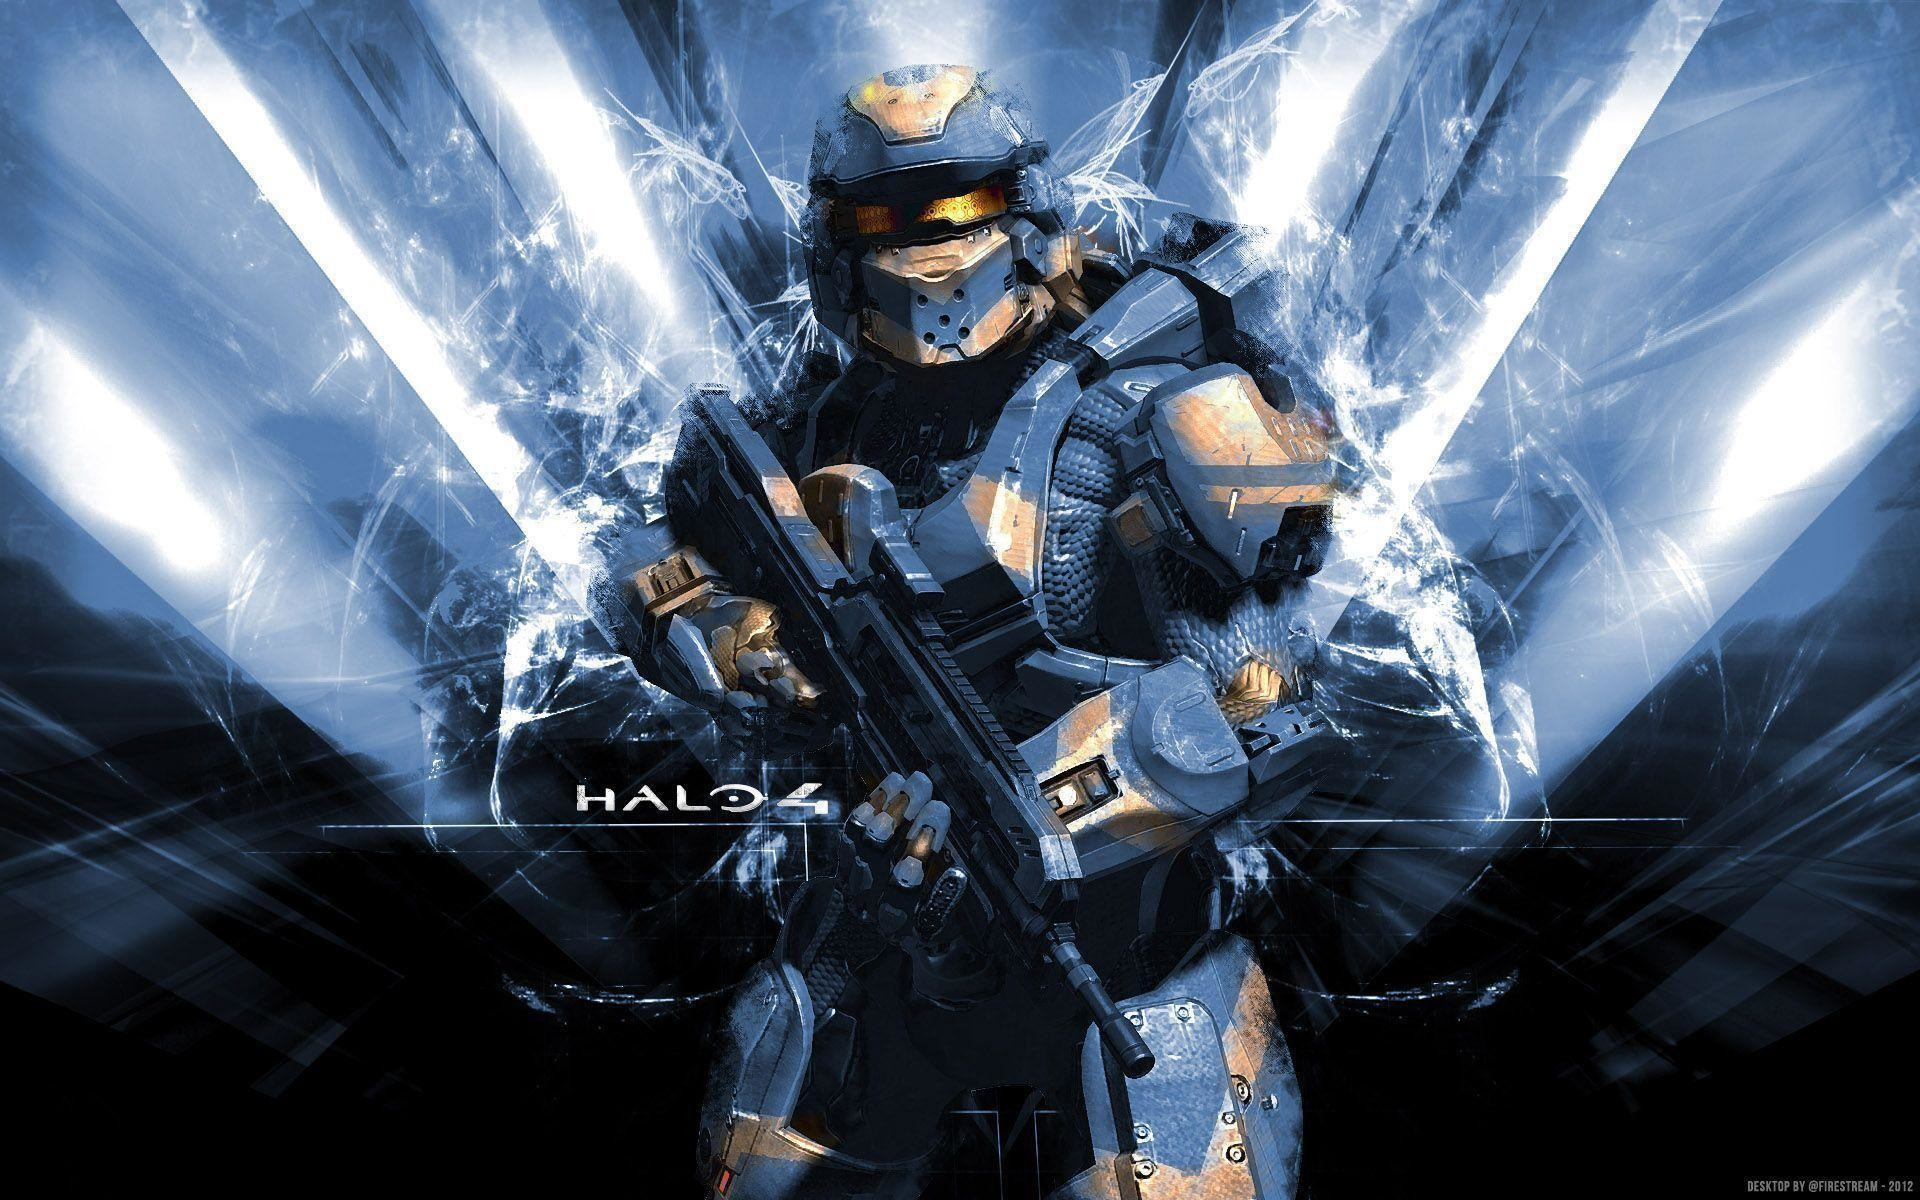 1920x1200 Cool Halo 4 Wallpapers 111355 Best HD Wallpapers | Wallpaiper.